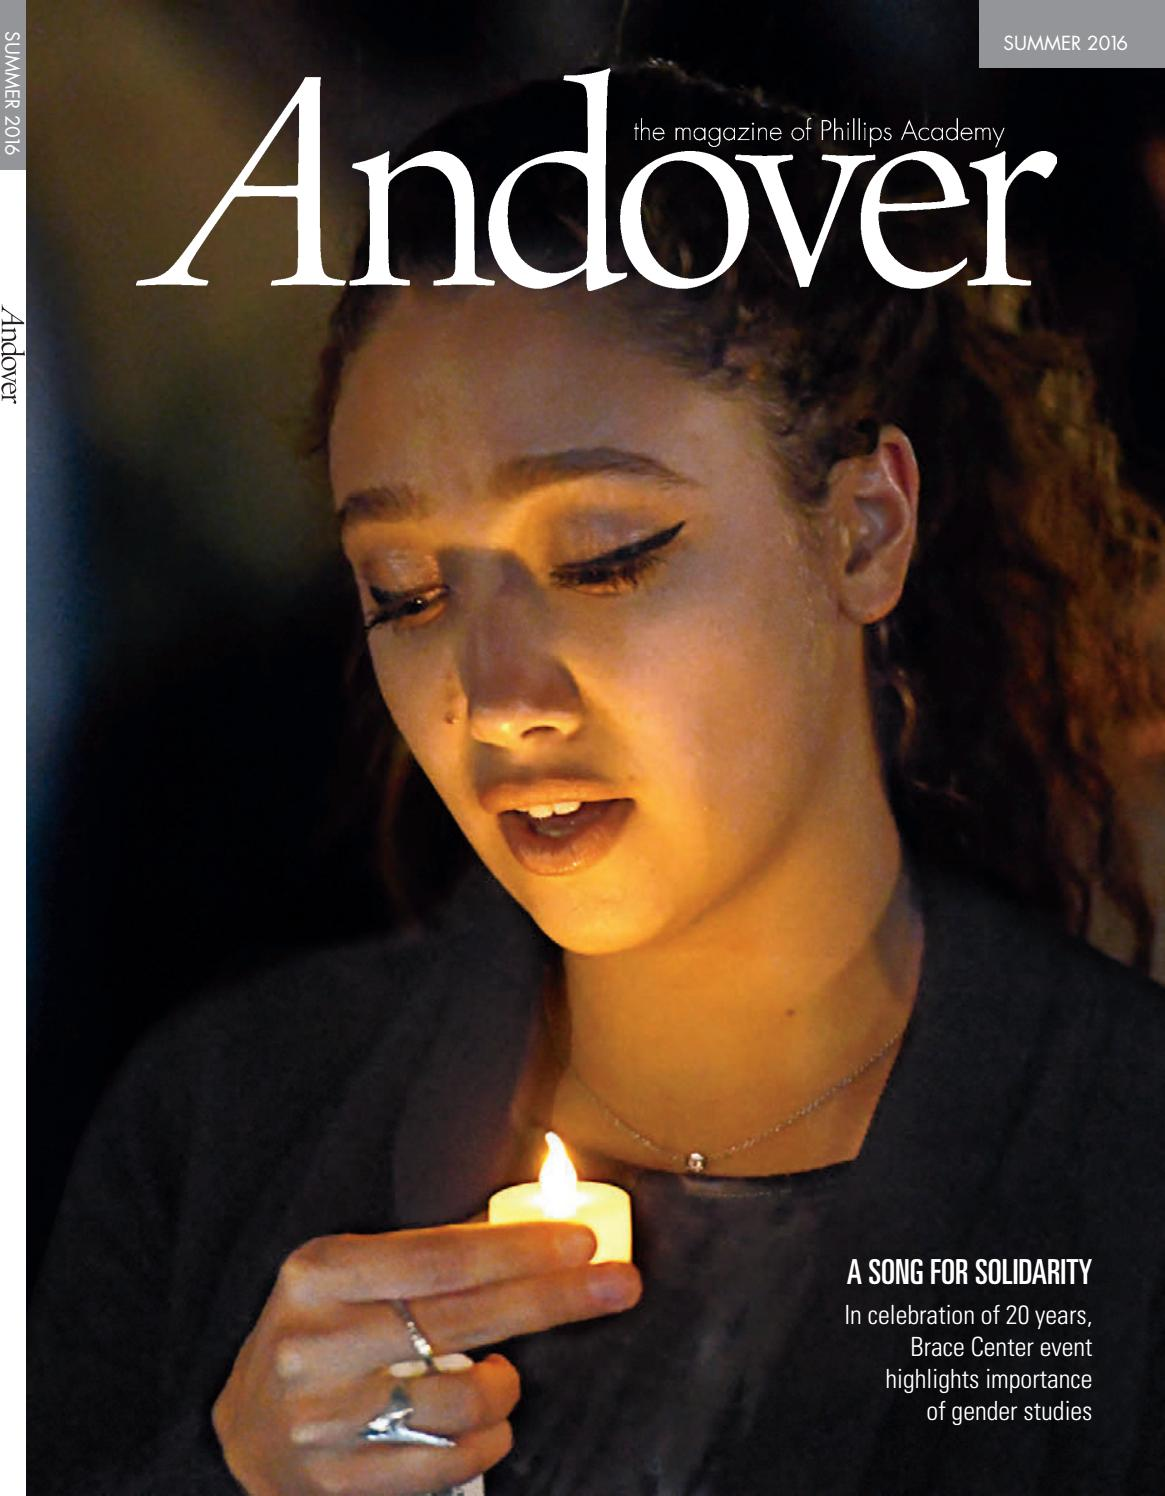 9acaecc298fc29 Andover magazine — Summer 2016 by Phillips Academy - issuu